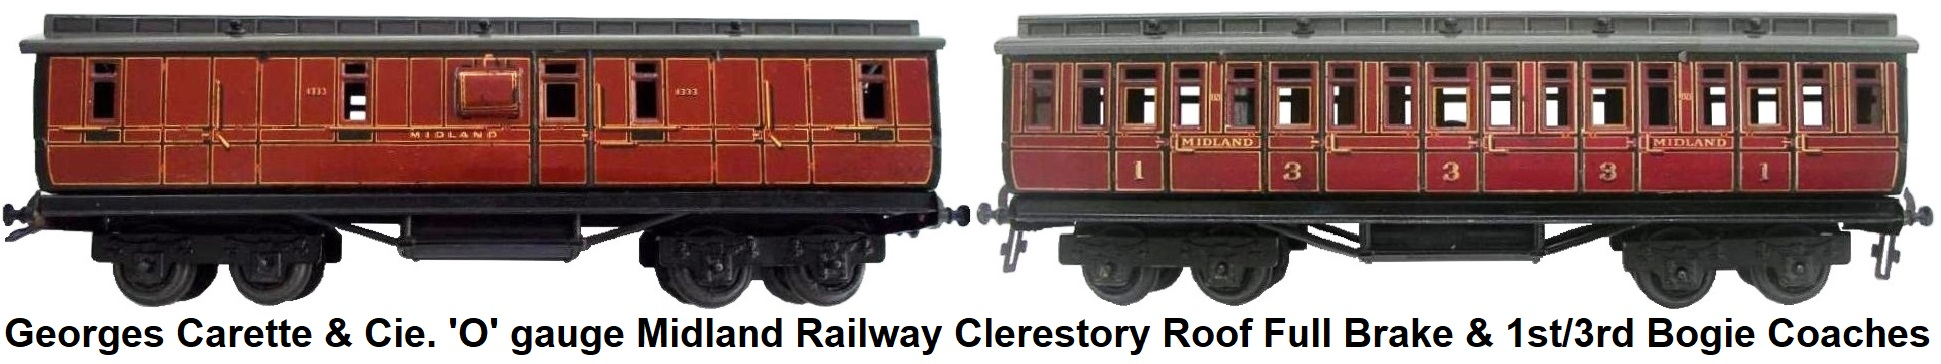 Carette 'O' gauge Midland Railway 30cm Clerestory Roof Full Brake Bogie Coach